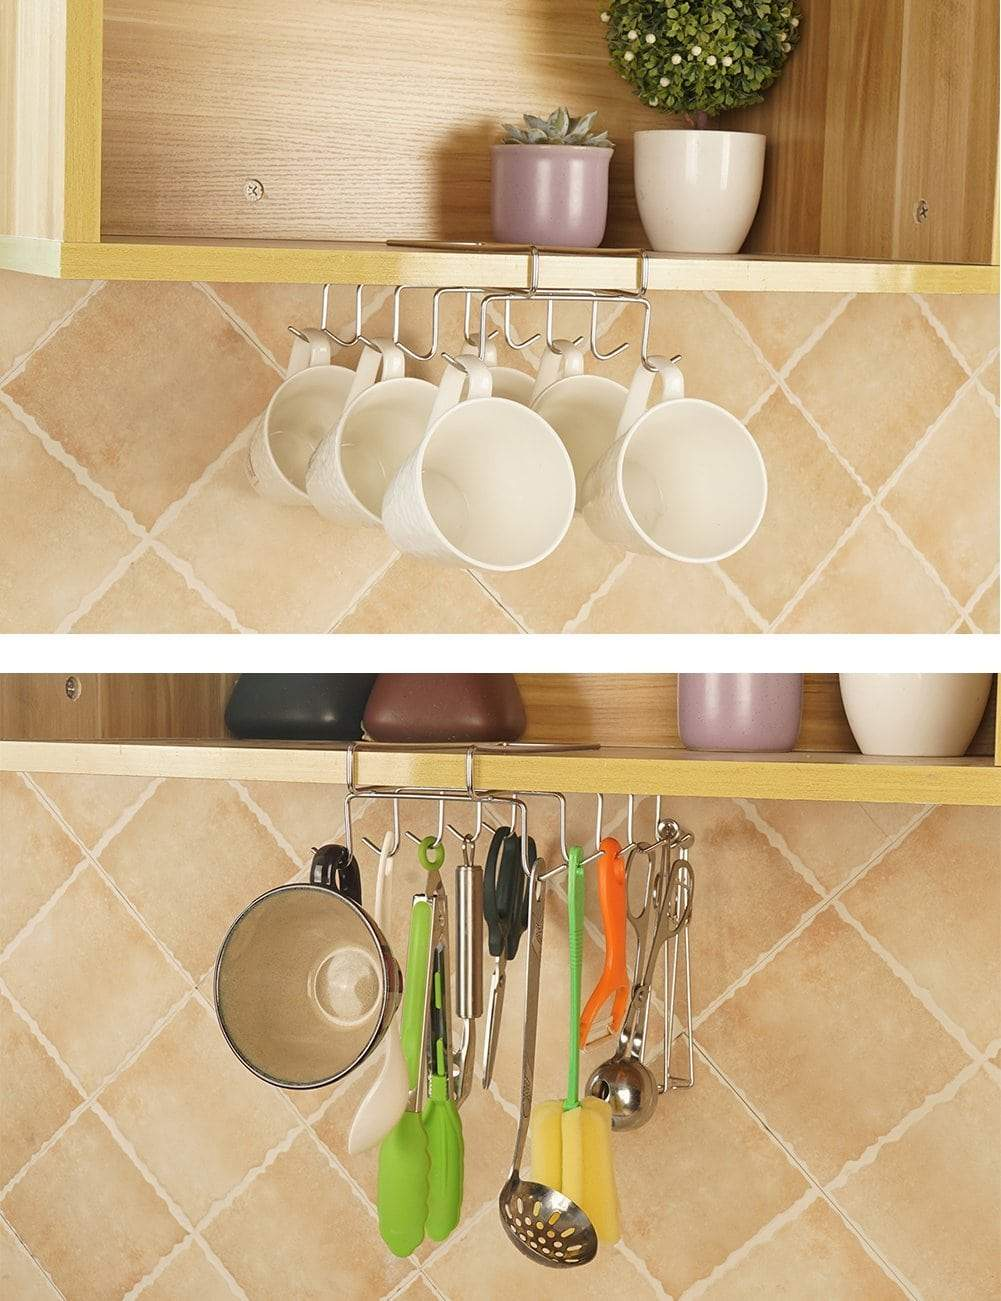 Get bafvt coffee mug holder 304 stainless steel cup rack under cabinet 10hooks fit for the cabinet 0 8 or less